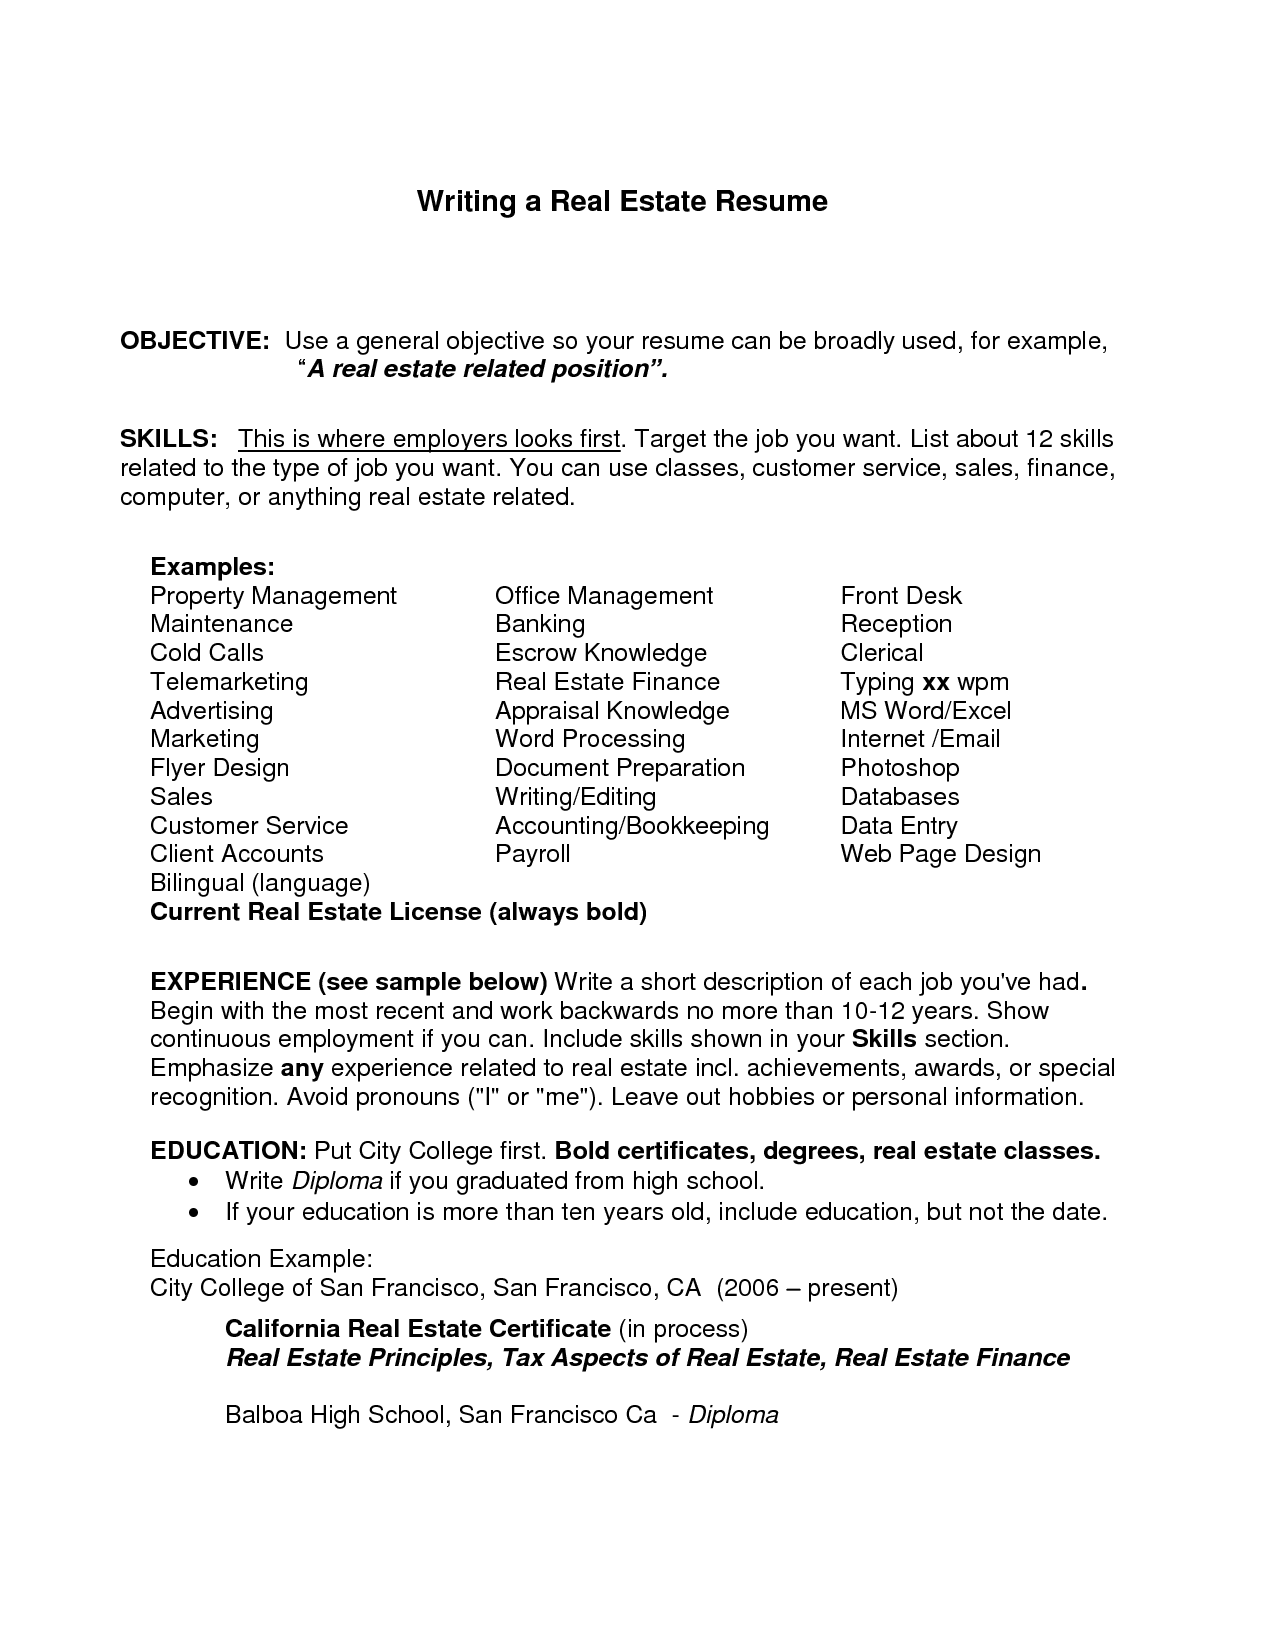 Job Objective Examples For Resumes Job Objective  Resume Templates  Pinterest  Resume Objective .